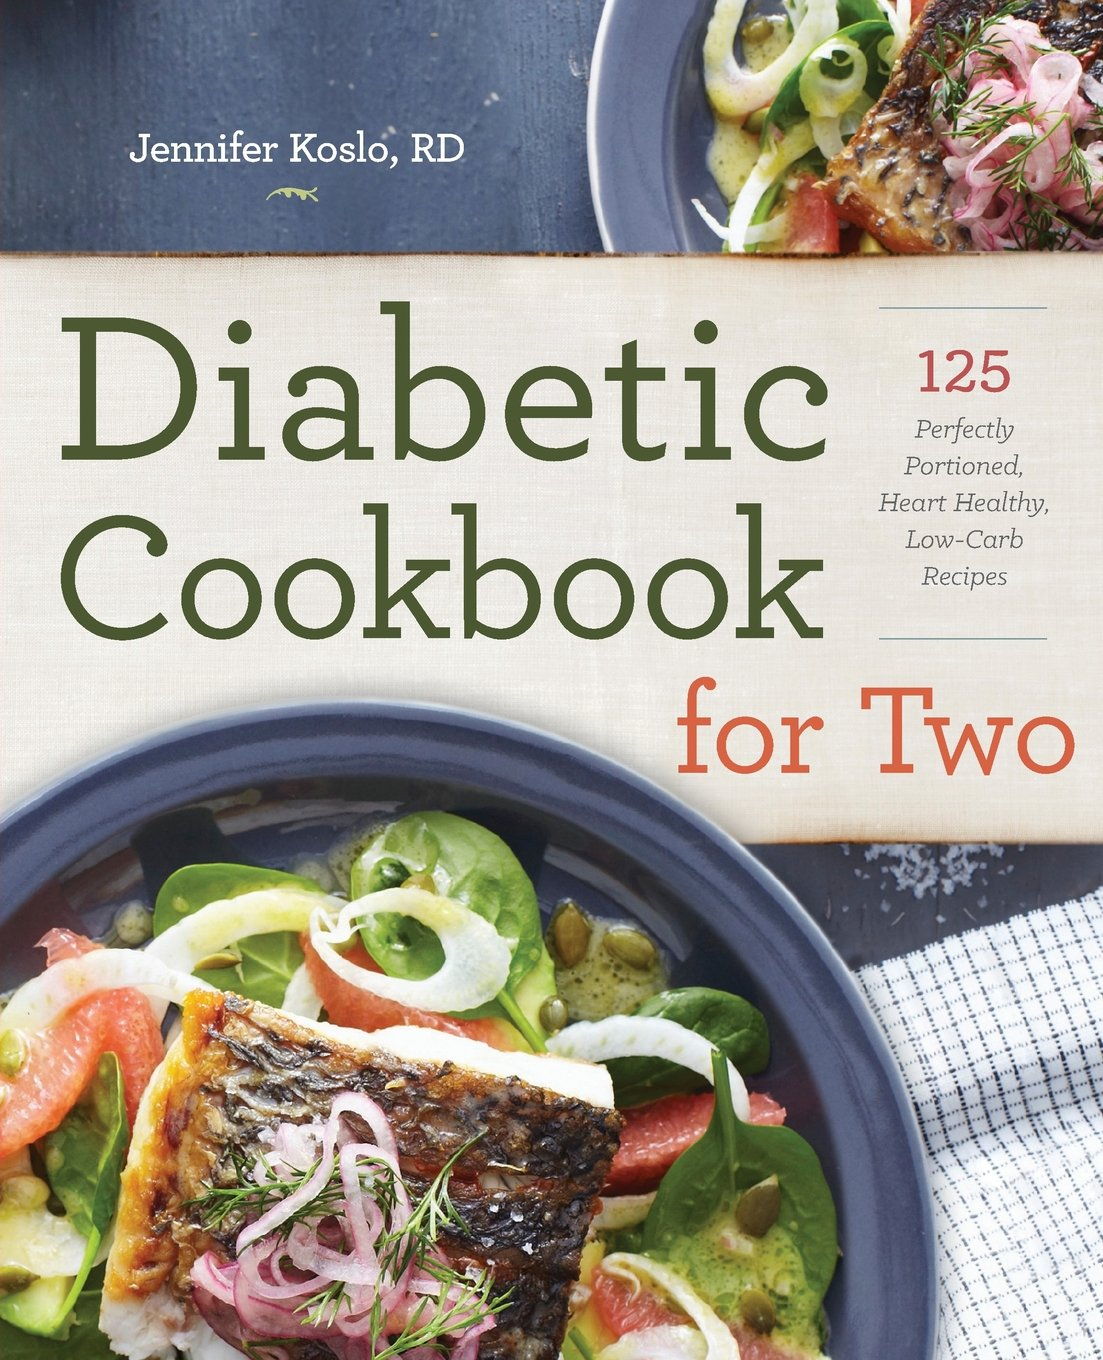 Diabetic Cookbook For Two 125 Perfectly Portioned Heart